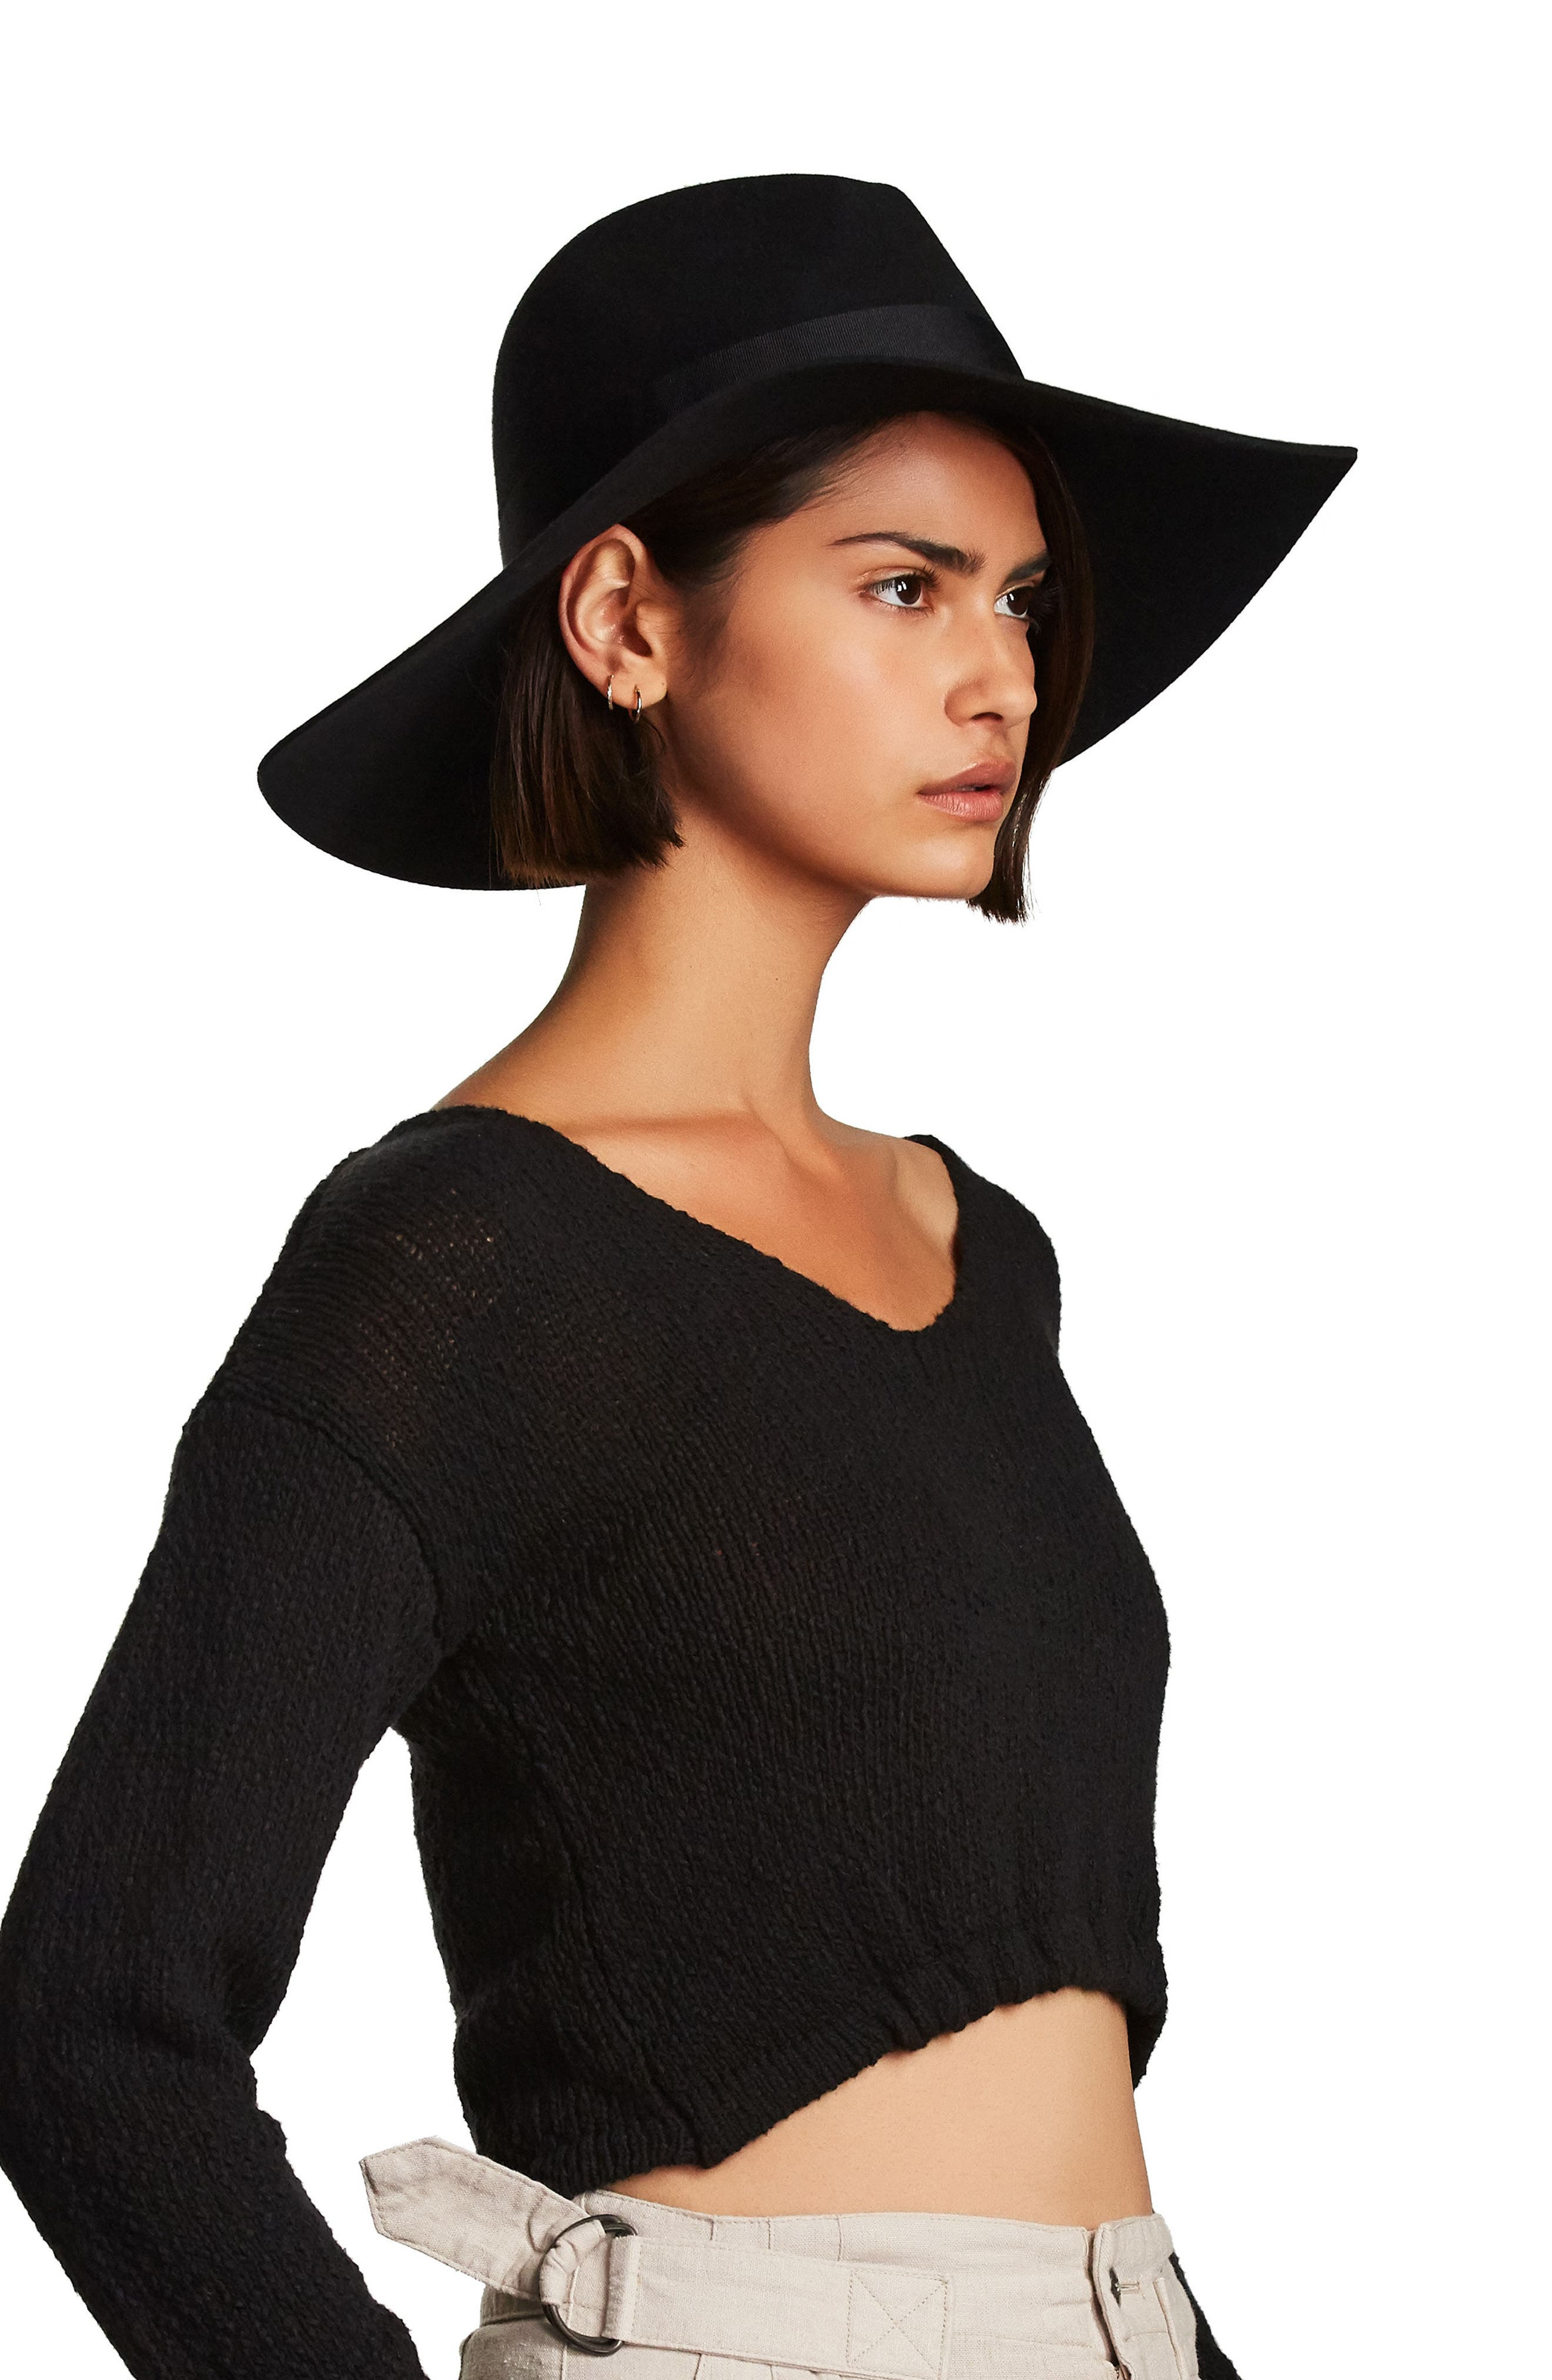 BRIXTON,                             'Piper' Floppy Wool Hat,                             Alternate thumbnail 3, color,                             TAN/ DARK BROWN